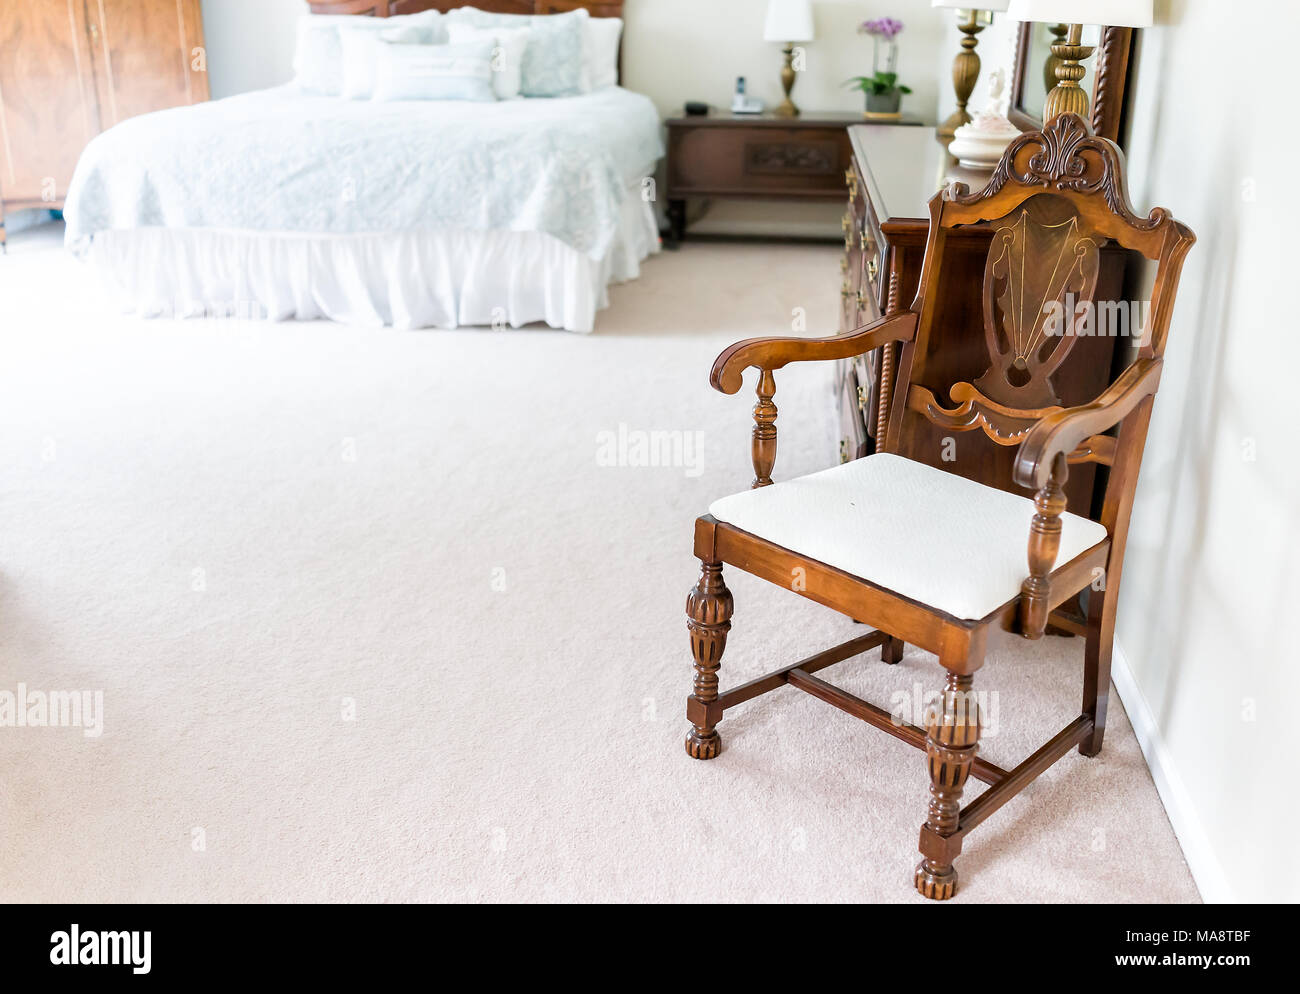 Bright white modern wooden rocking chair in nursery room bedroom with chest of drawers, bed, decorations in model staging home, apartment or house - Stock Image